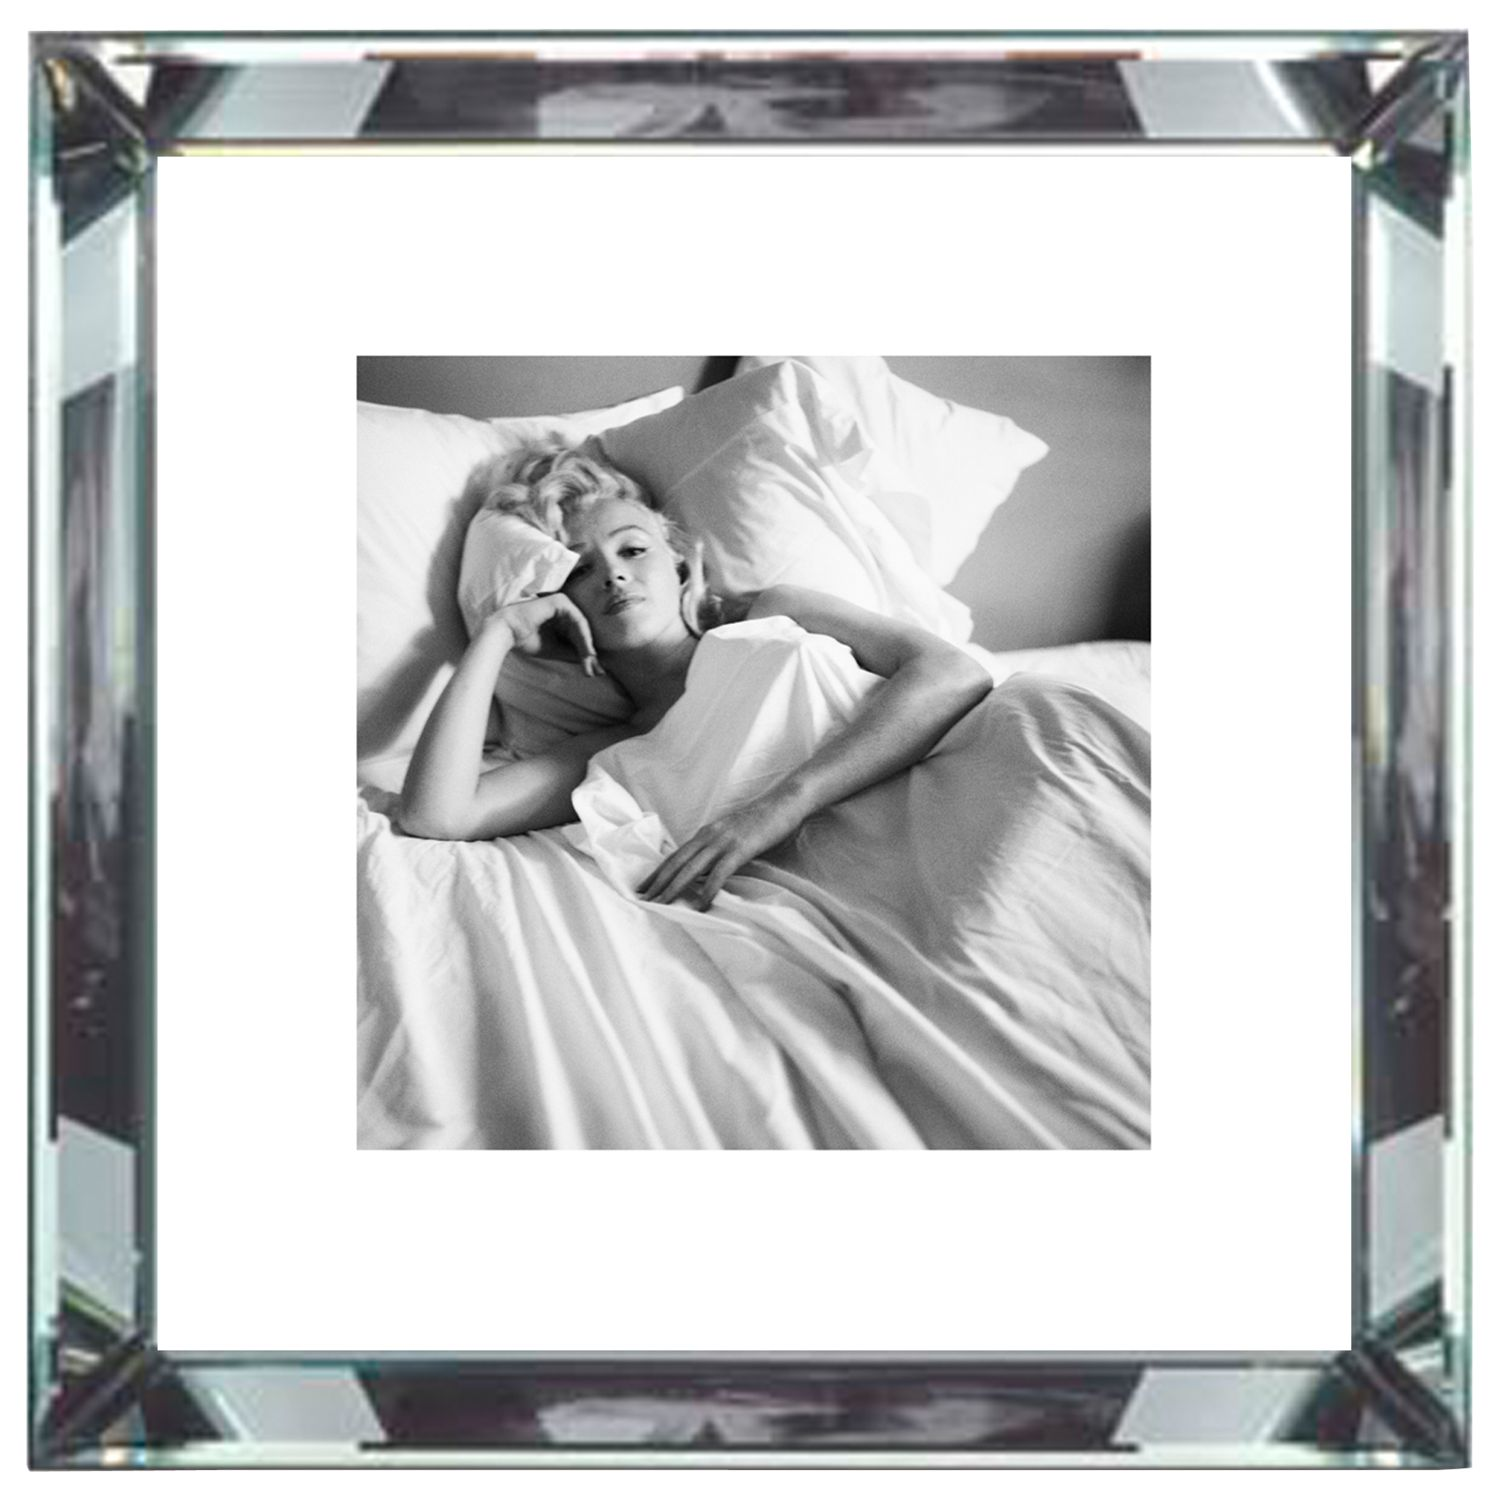 Brookpace Brookpace, The Manhattan Collection - Marilyn Monroe Bed Framed Print, 46 x 46cm